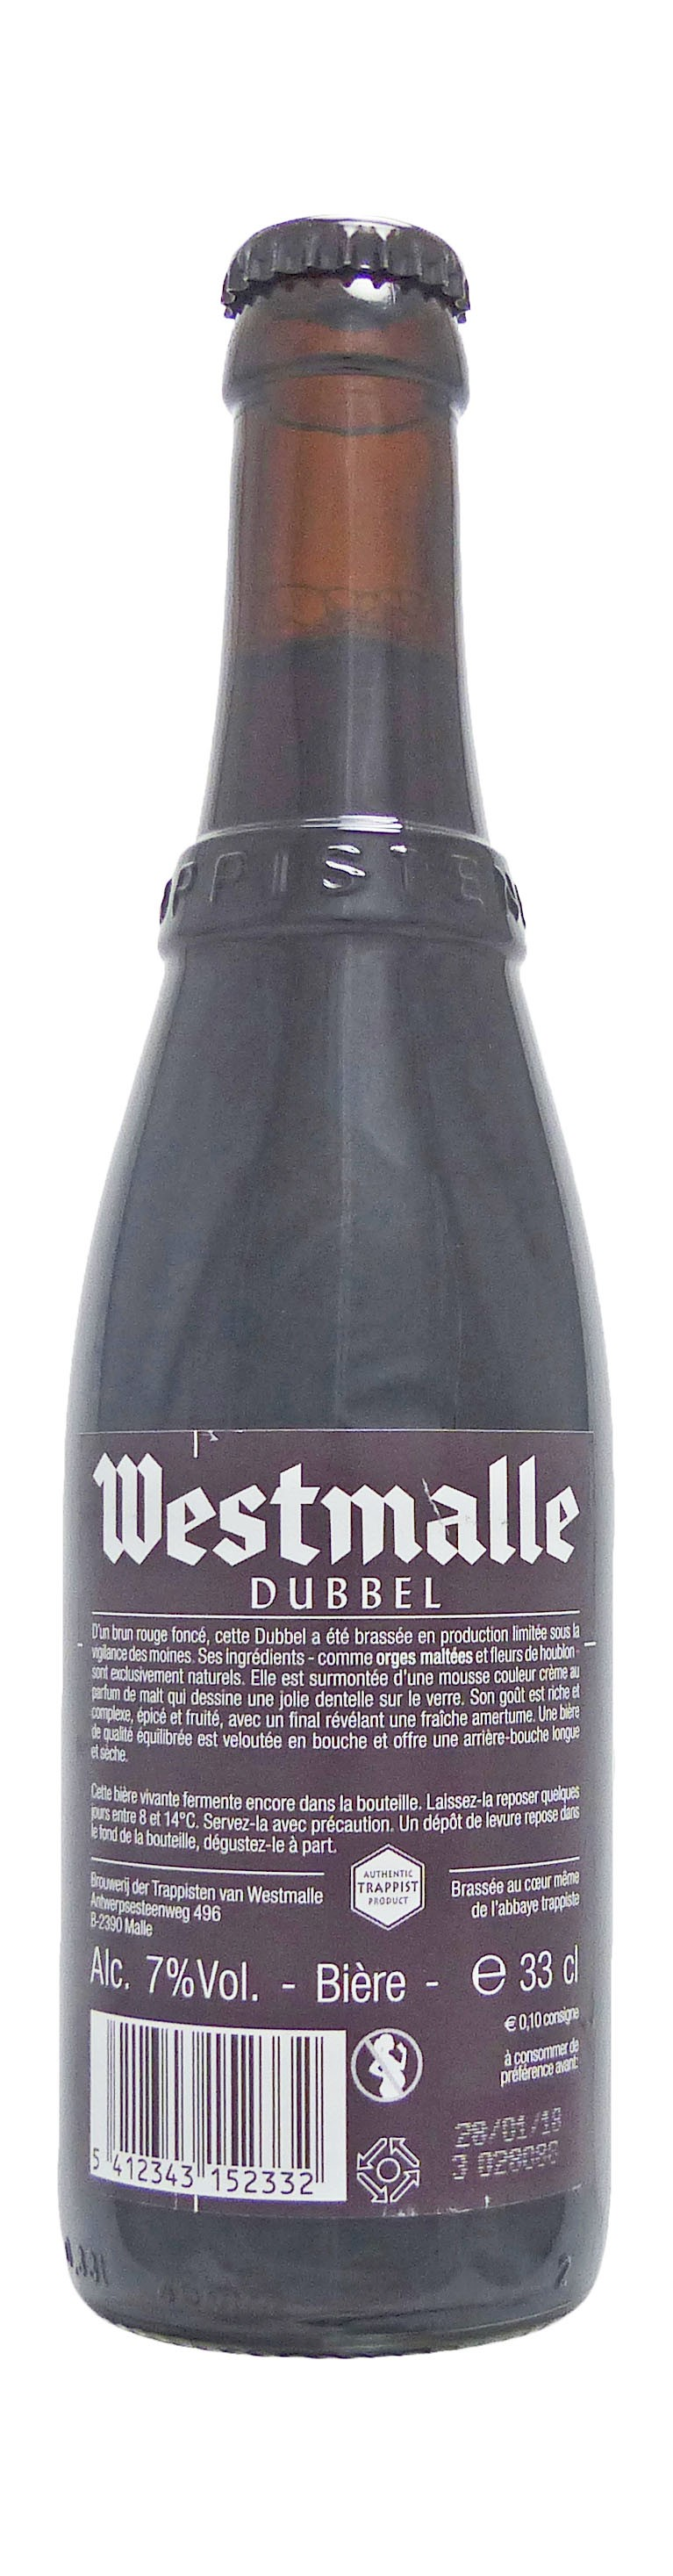 Photo de face de Westmalle Dubbel